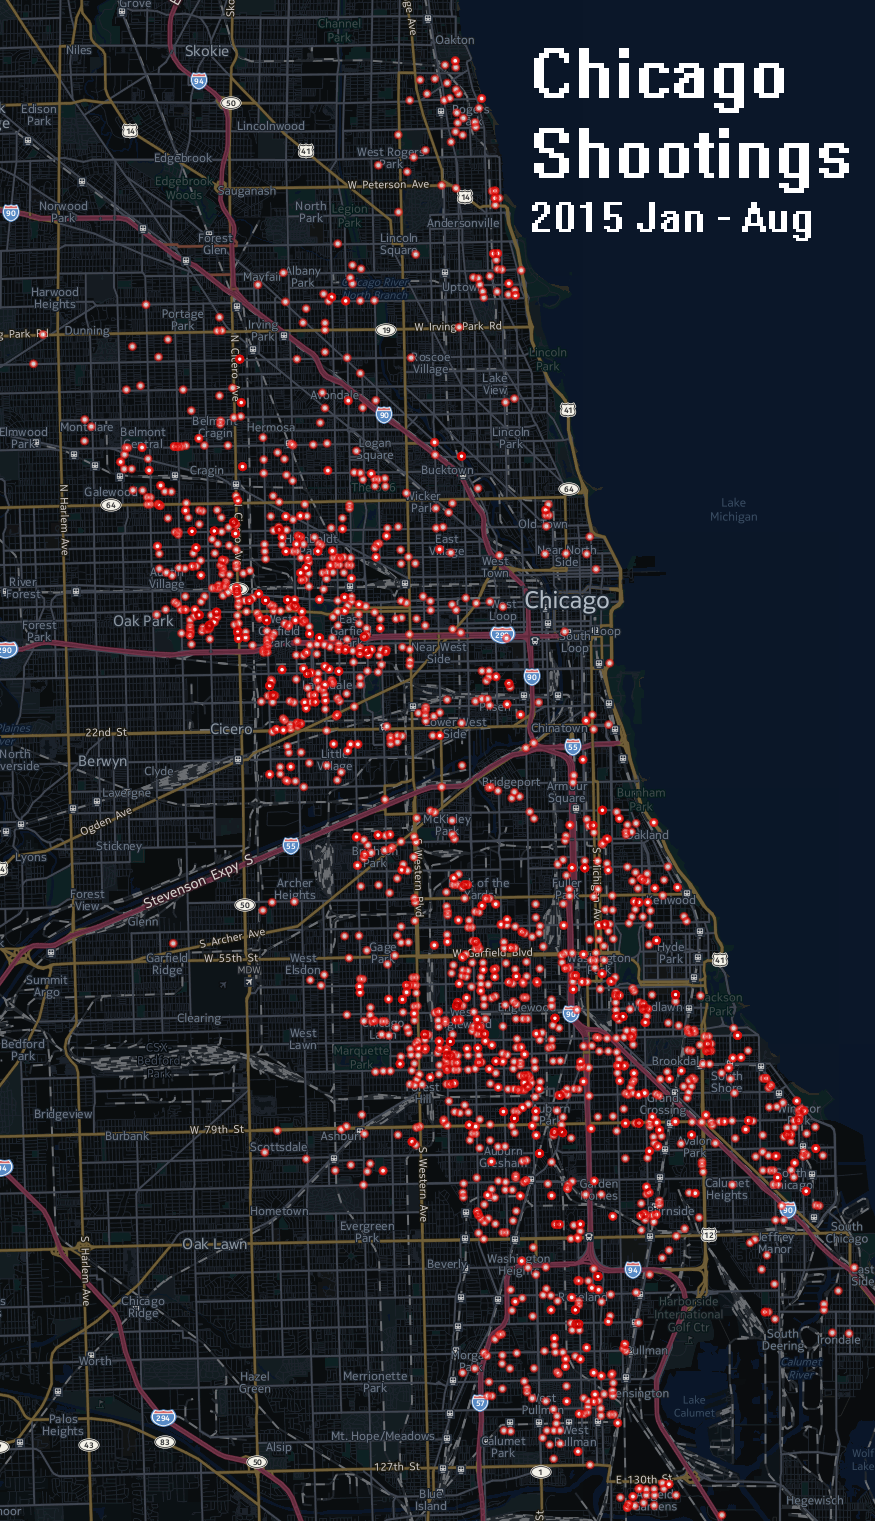 Does Seattle have an equivalent to this map? : Seattle on chicago snow map, chicago murders, chicago police shooting, chicago homicide victims, chicago homicides april 2013, chicago gang map, chicago bike map, chicago neighborhood map, chicago city map, chicago gang neighborhoods, chicago road map, chicago police homicide, chicago death map, chicago homicide map 2012, chicago police map, chicago school map, chicago food map, chicago breaking weather, chicago violence map, chicago shooting today,